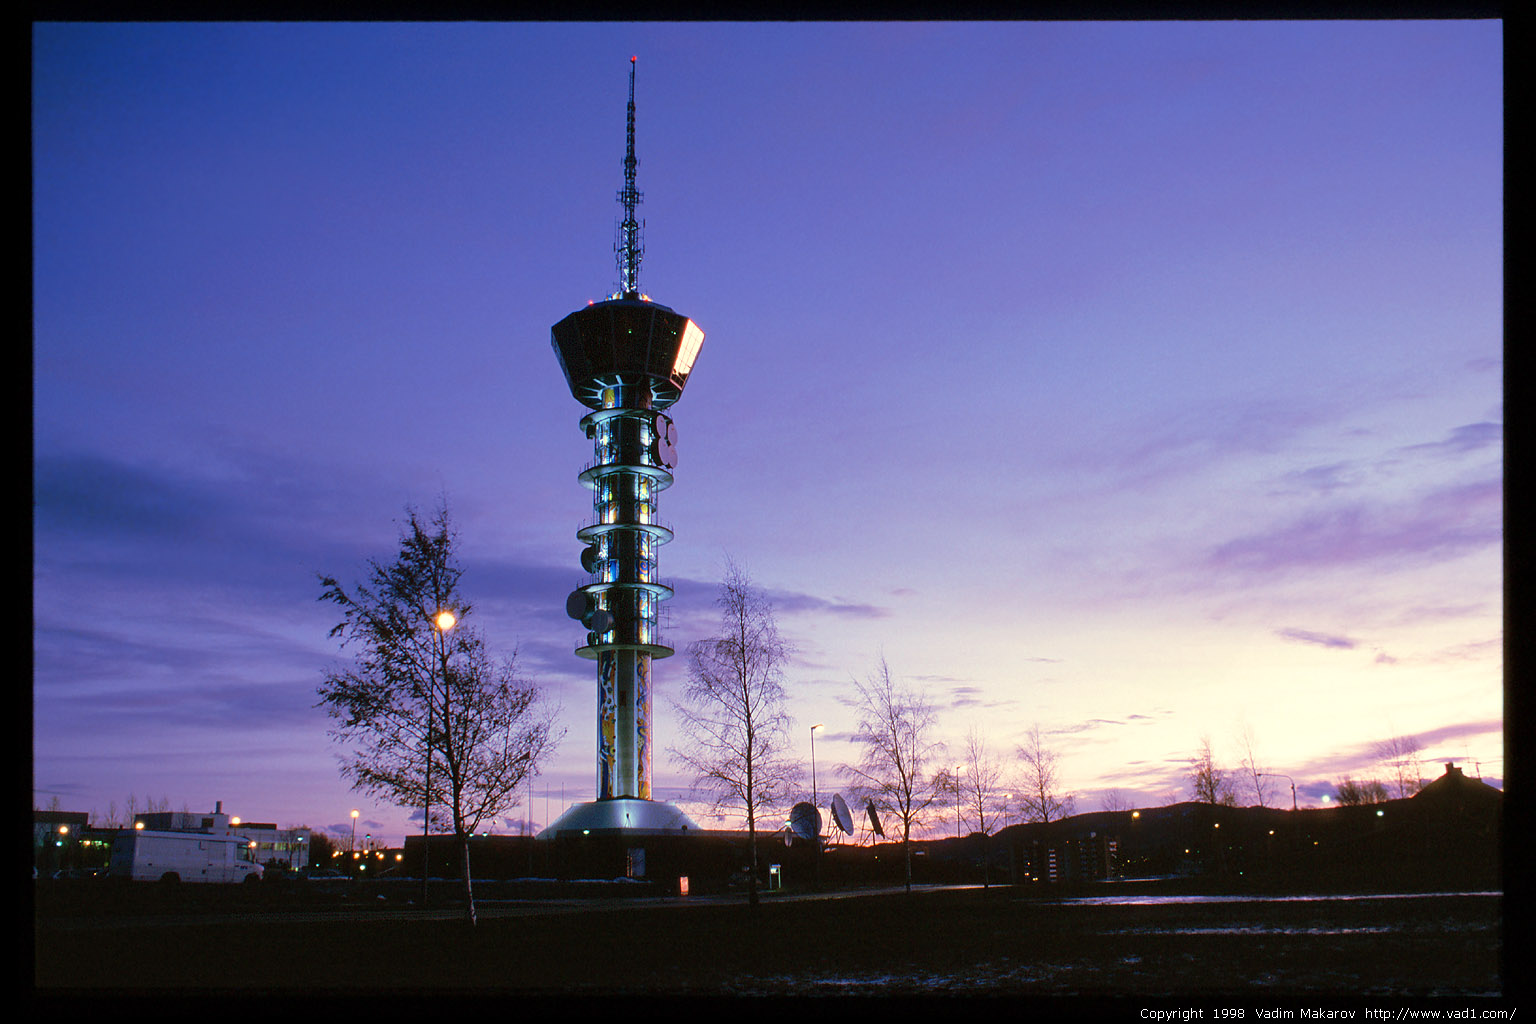 Photo Tyholt T 229 Rnet Tyholt Tv Tower